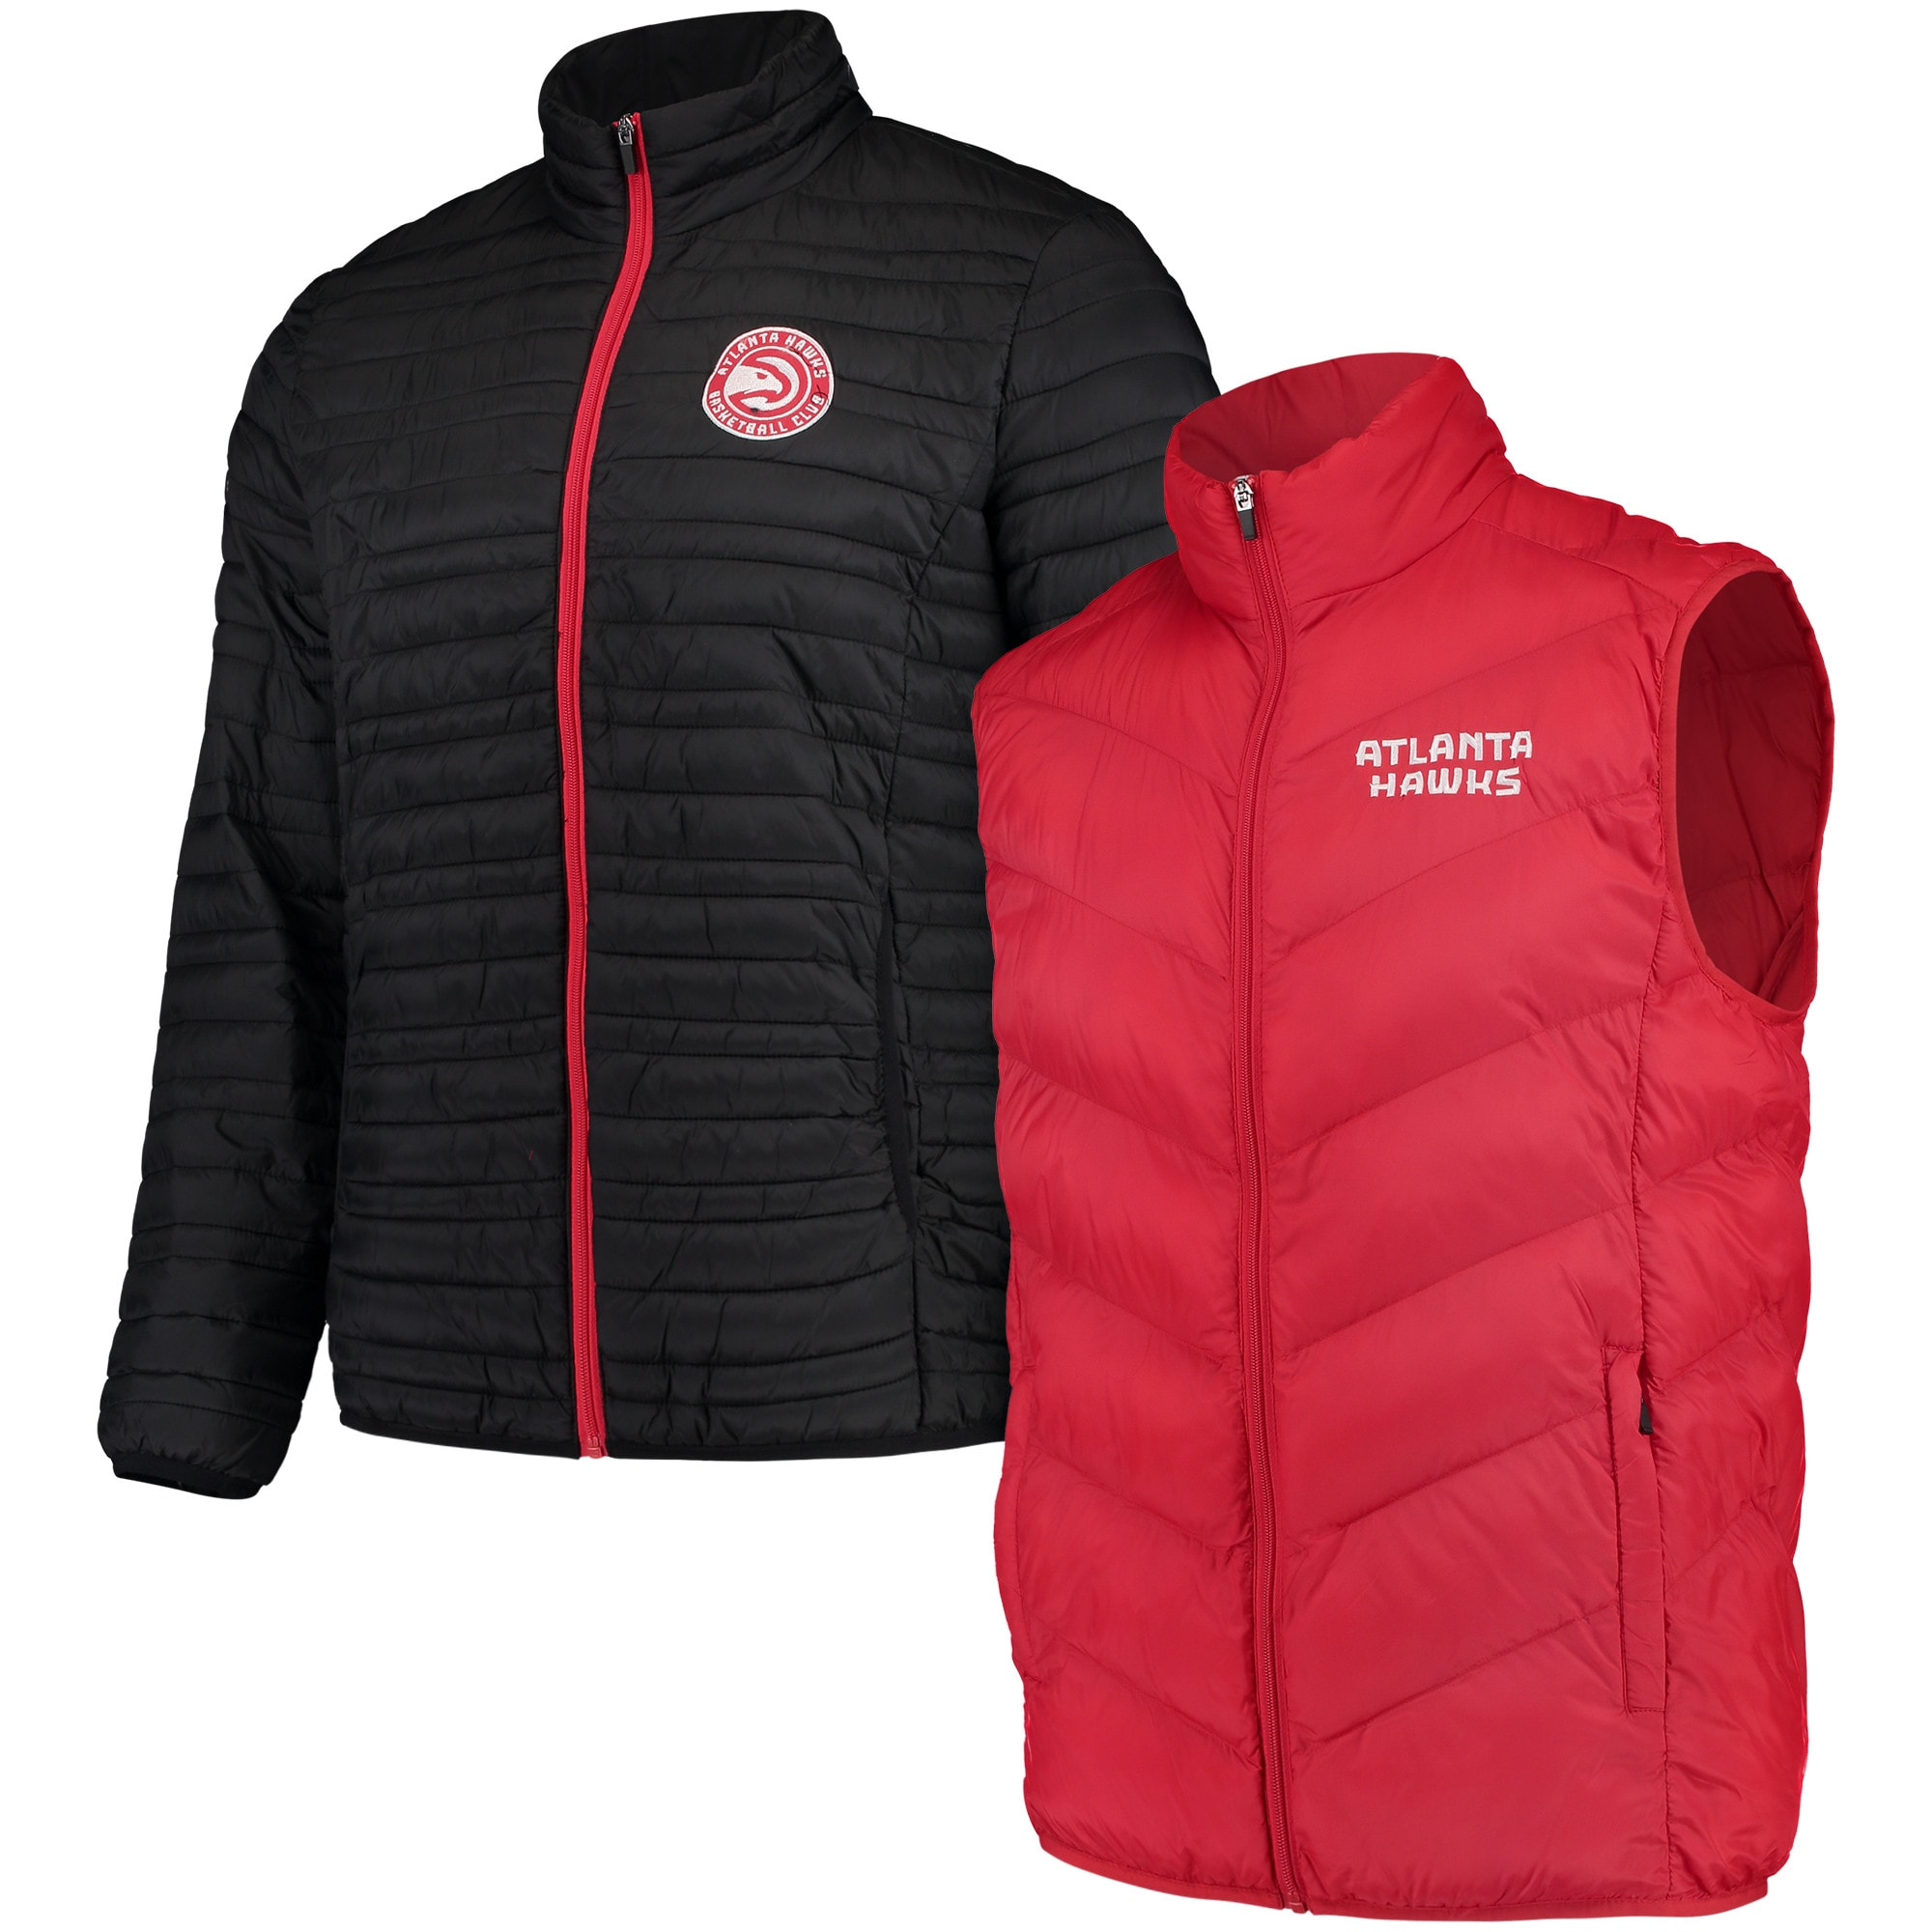 Atlanta Hawks G-III Sports by Carl Banks Three & Out 3-in-1 System Full-Zip Vest & Jacket Set - Red/Black